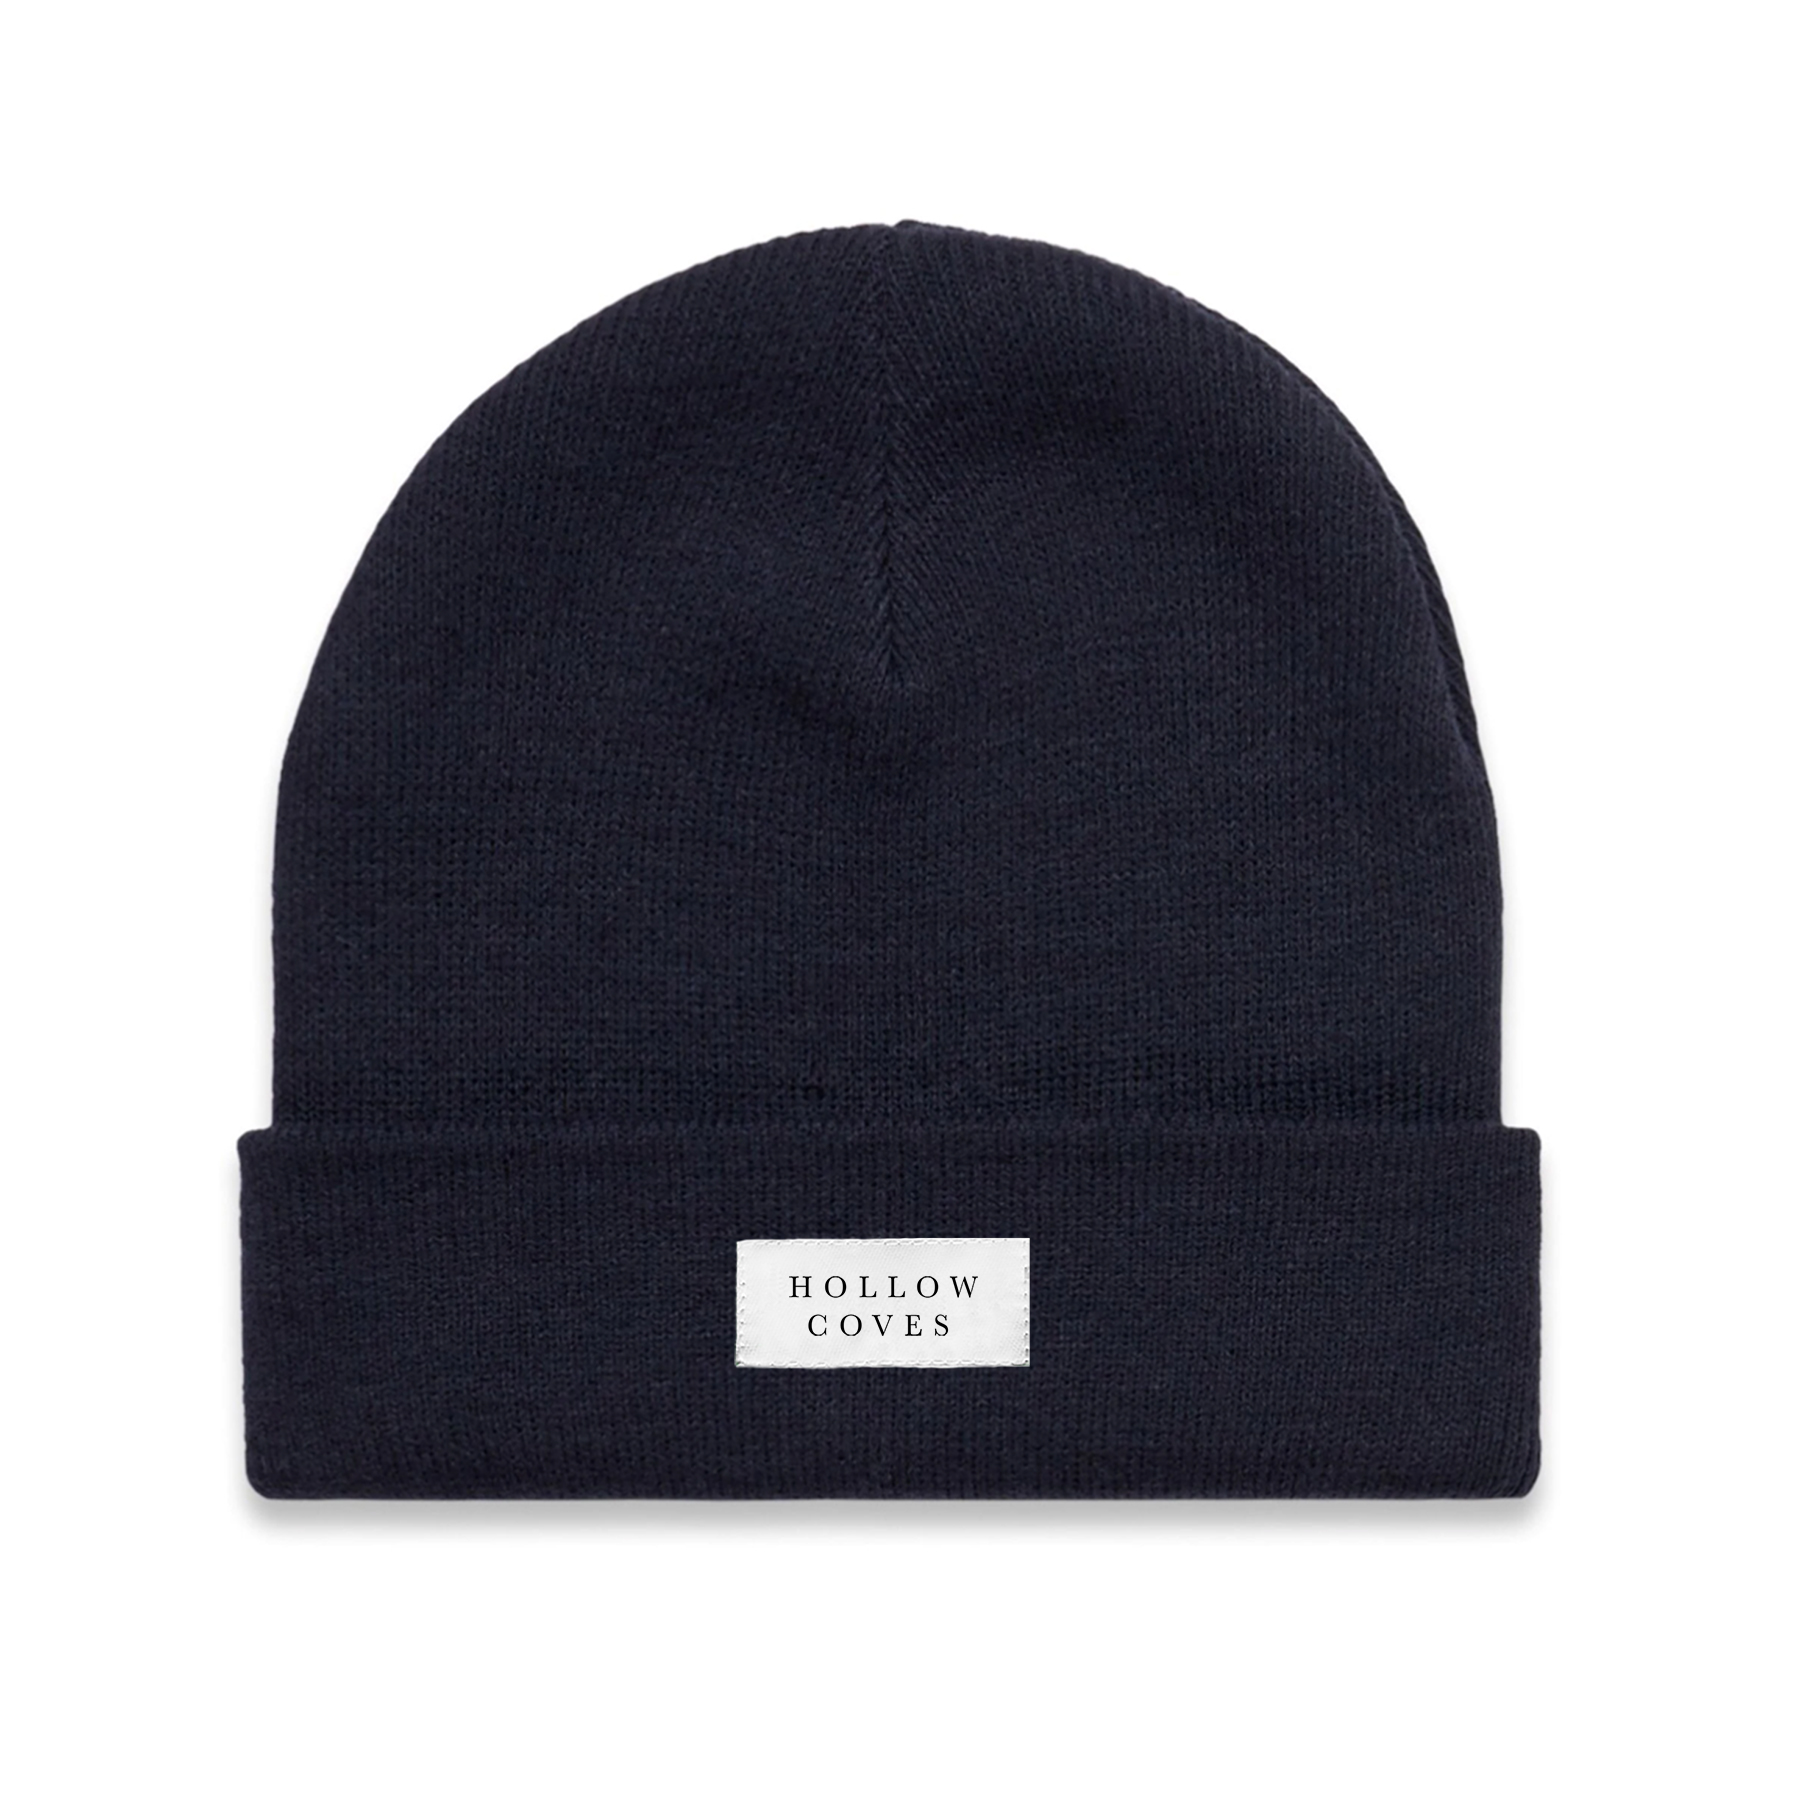 Buy Online Hollow Coves - Navy Beanie